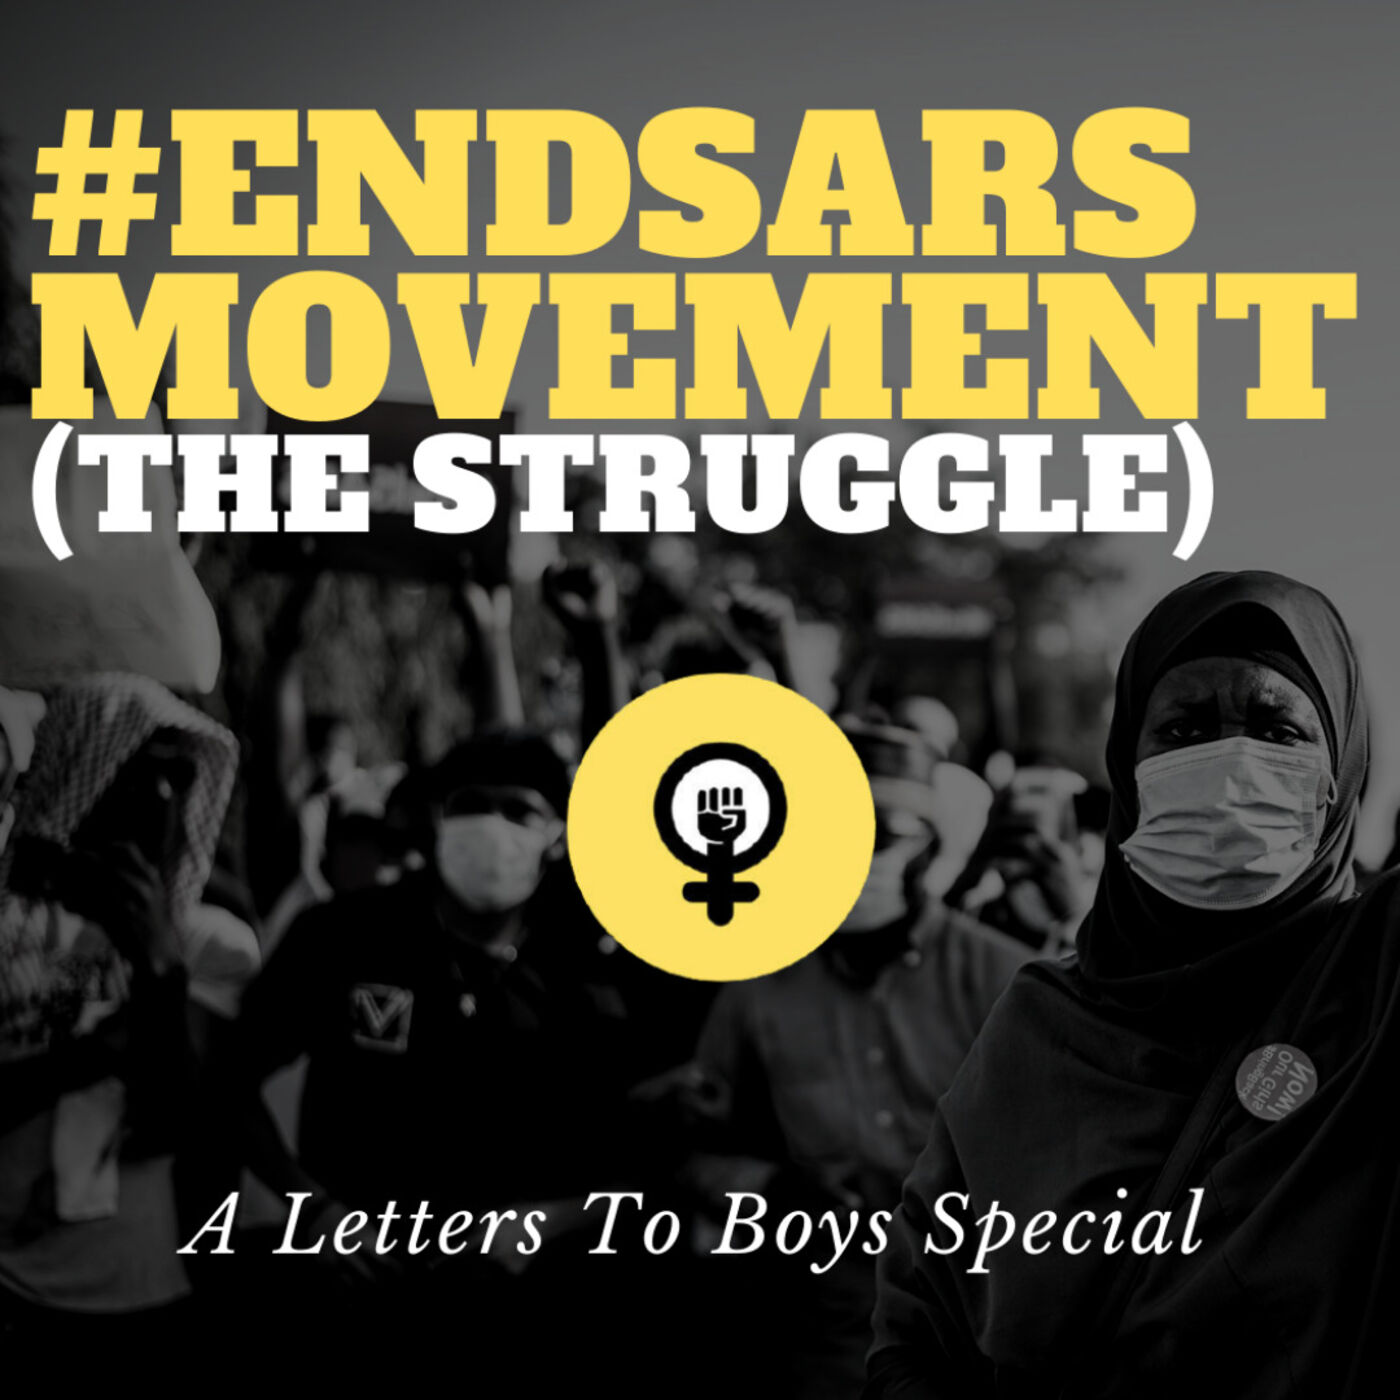 ENDSARS MOVEMENT: (THE STRUGGLE) | A Letters To Boys Special